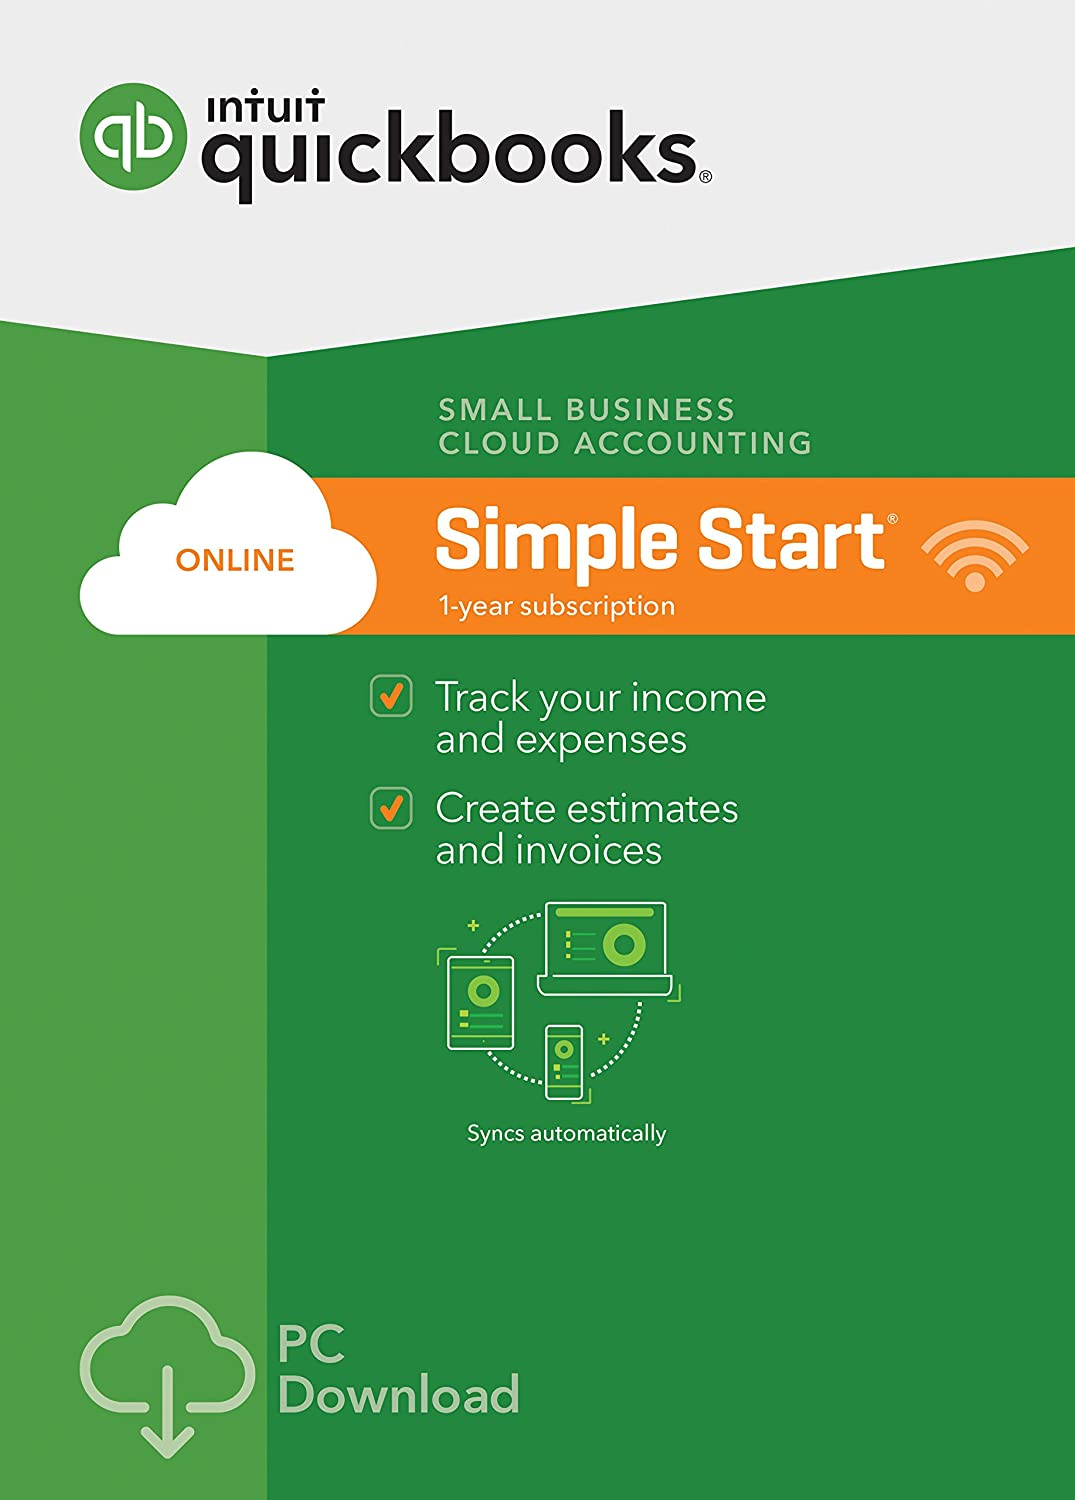 Amazon quickbooks online simple start 2017 small business amazon quickbooks online simple start 2017 small business accounting old version software ccuart Choice Image